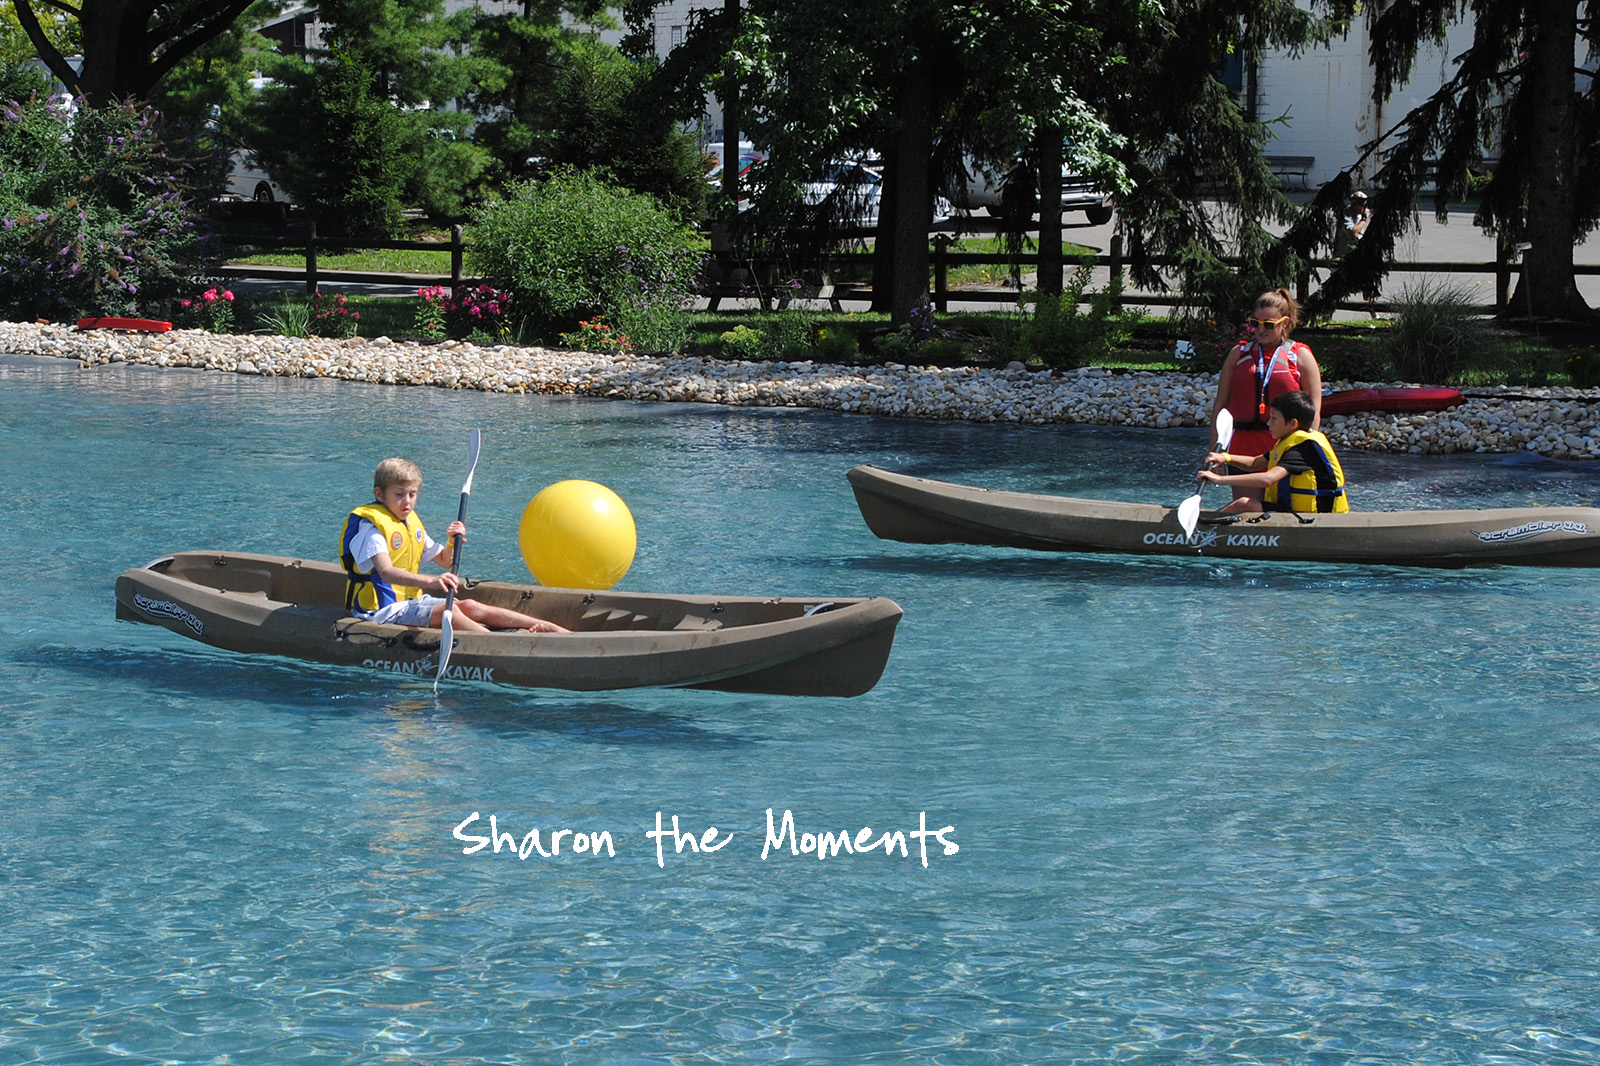 Ohio State Fair Dept of Natural Resources Kayaking Fond Memories|Sharon the Moments blog